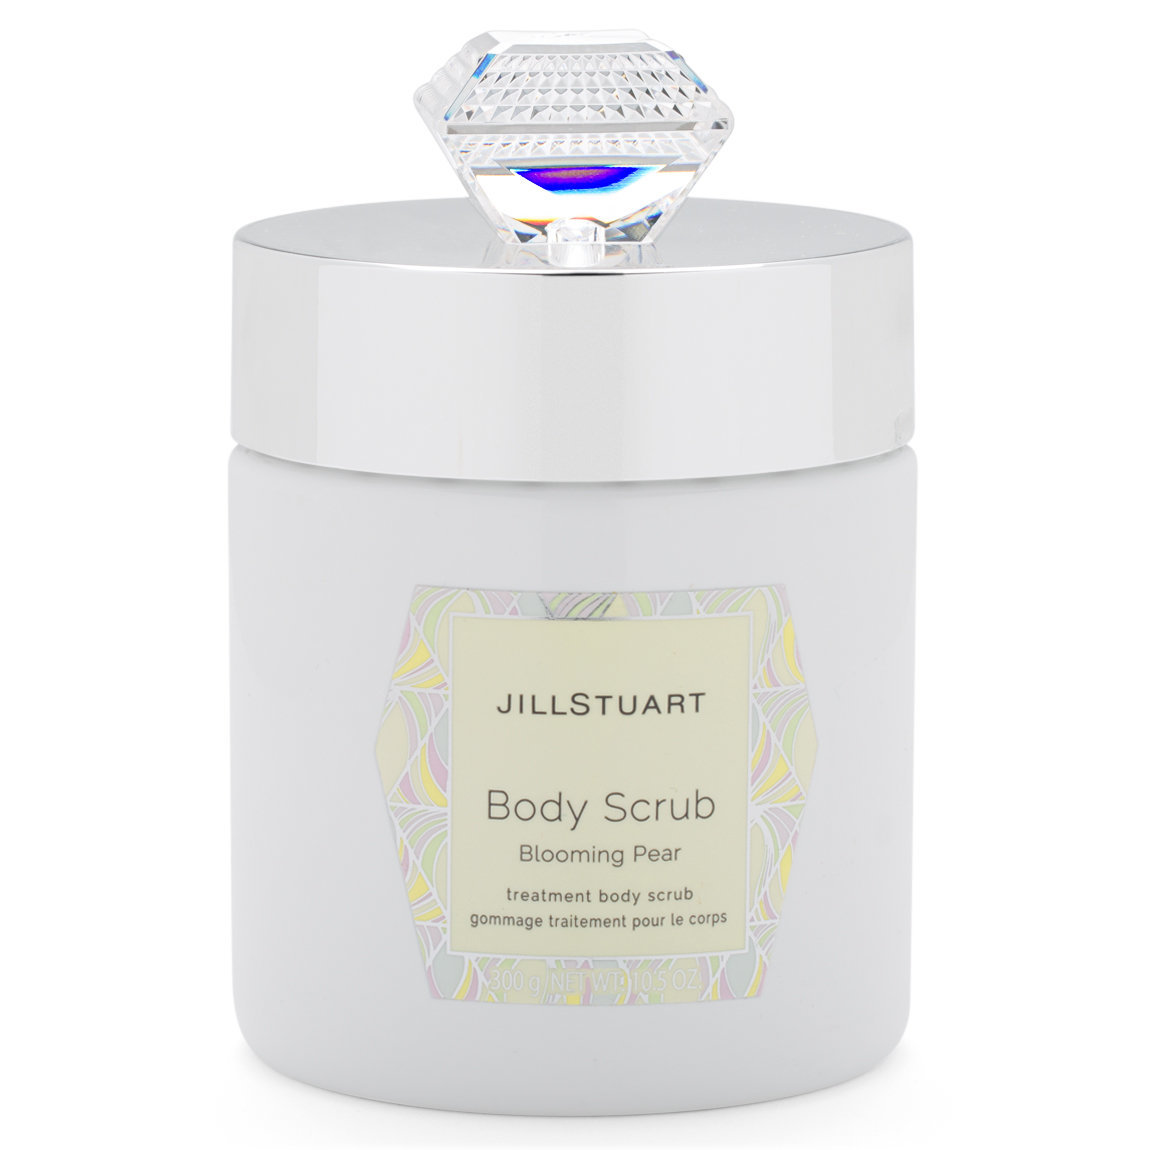 JILL STUART Beauty Body Scrub Blooming Pear alternative view 1 - product swatch.